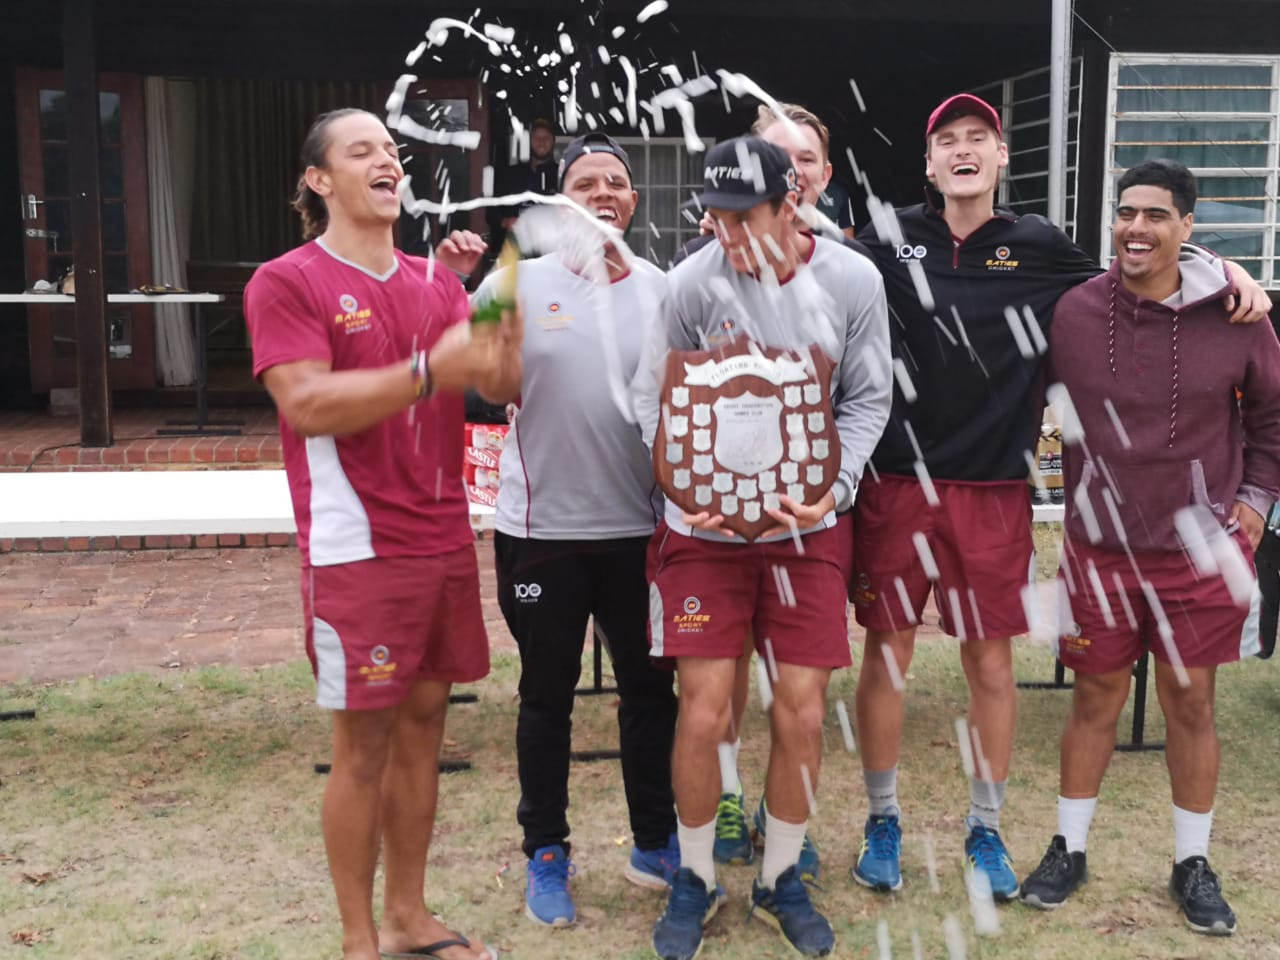 Deserving Winners, Maties!